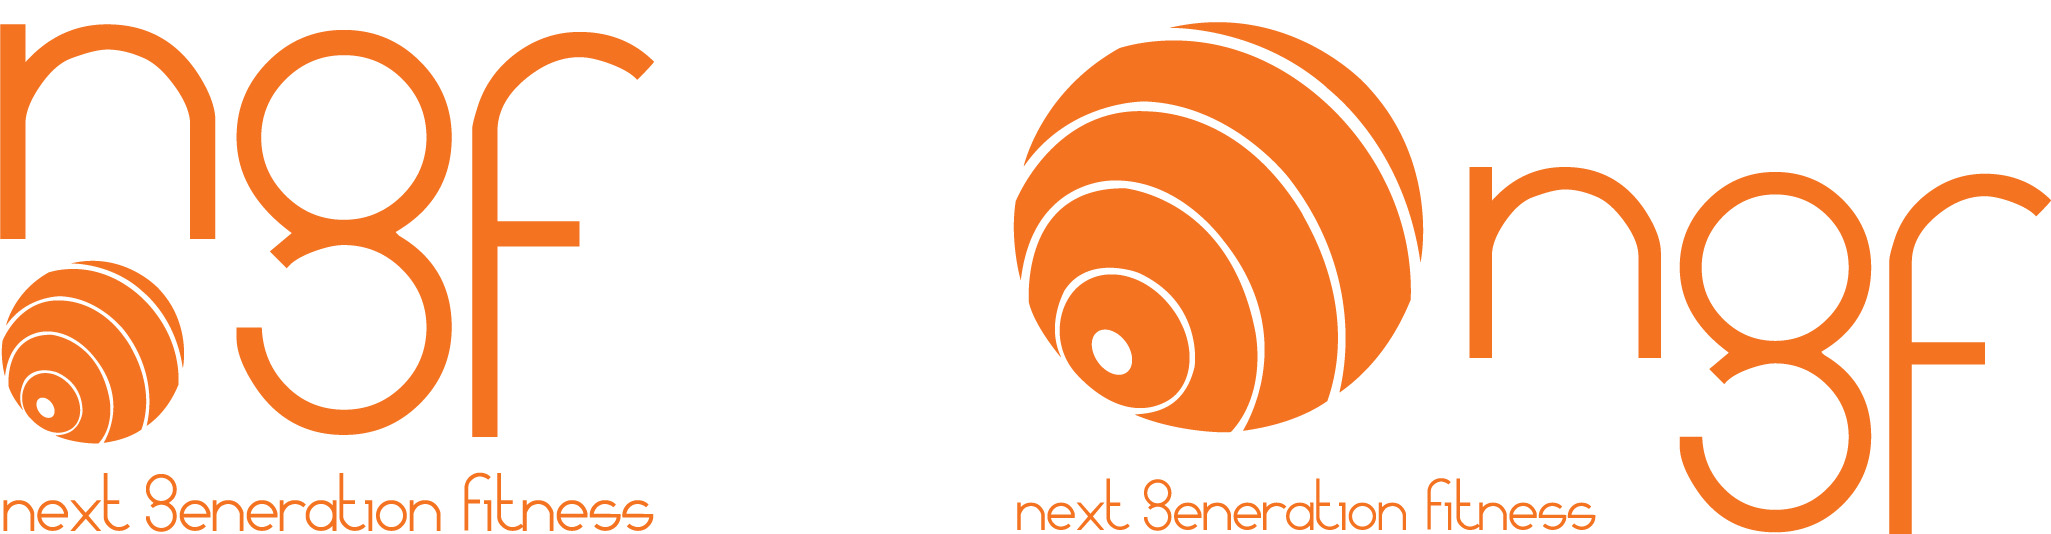 Fitness Logo Design for Next Generation Fitness (or perhaps